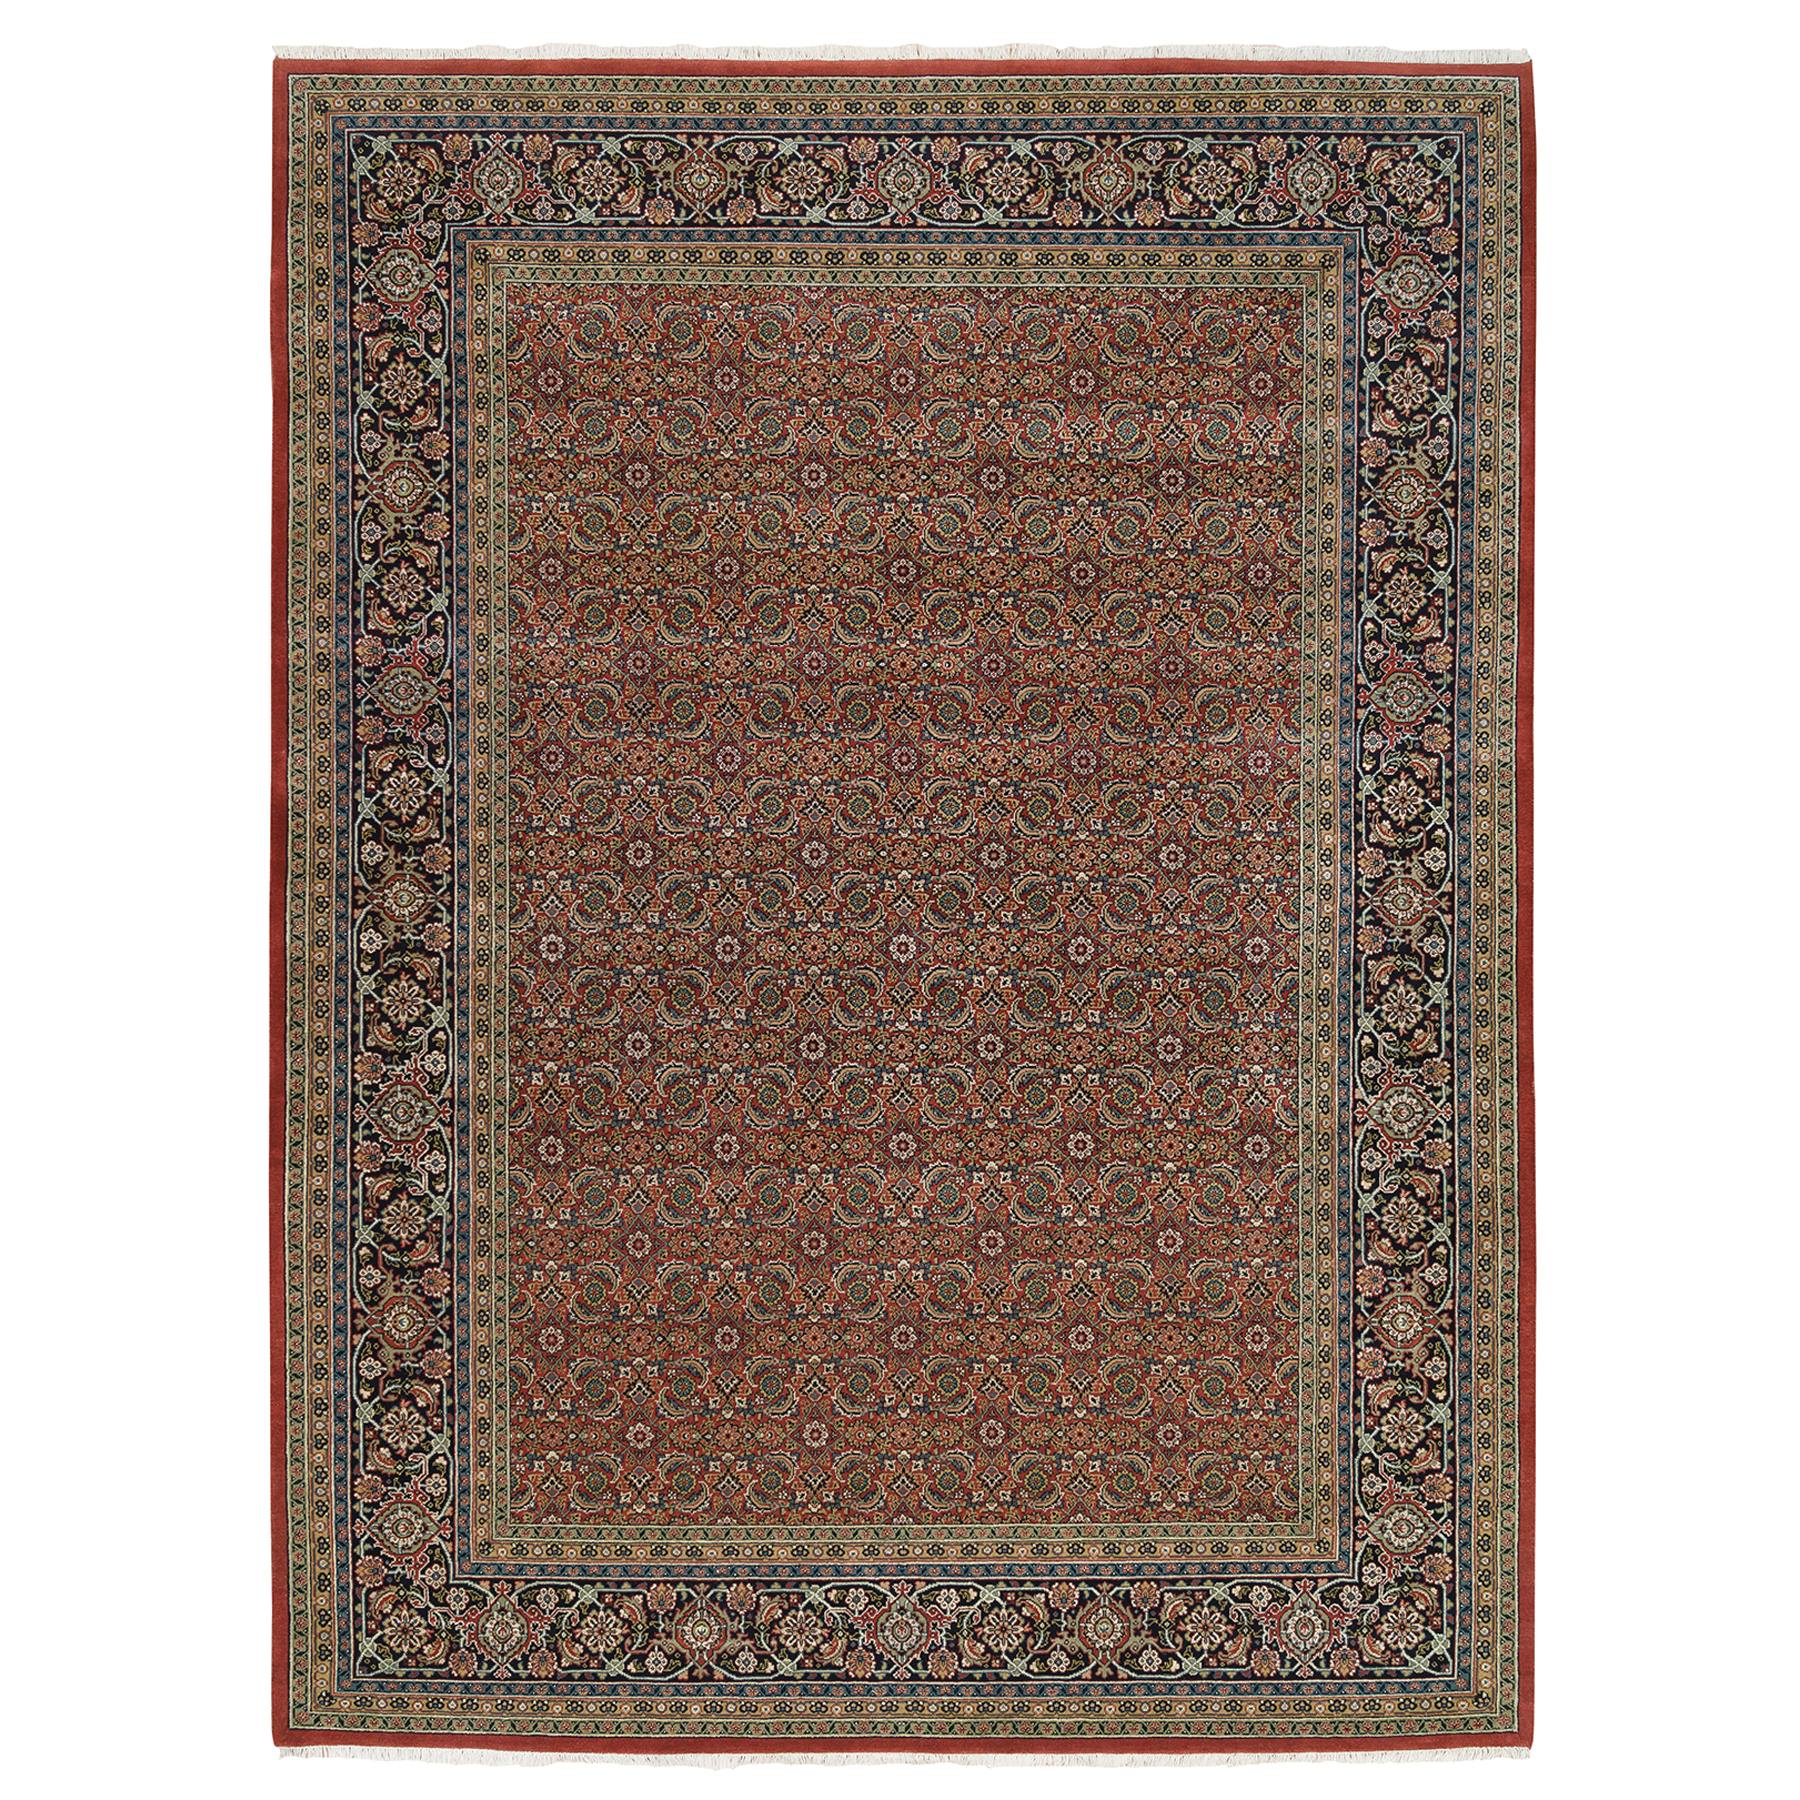 Pirniakan Collection Hand Knotted Red Rug No: 1126042